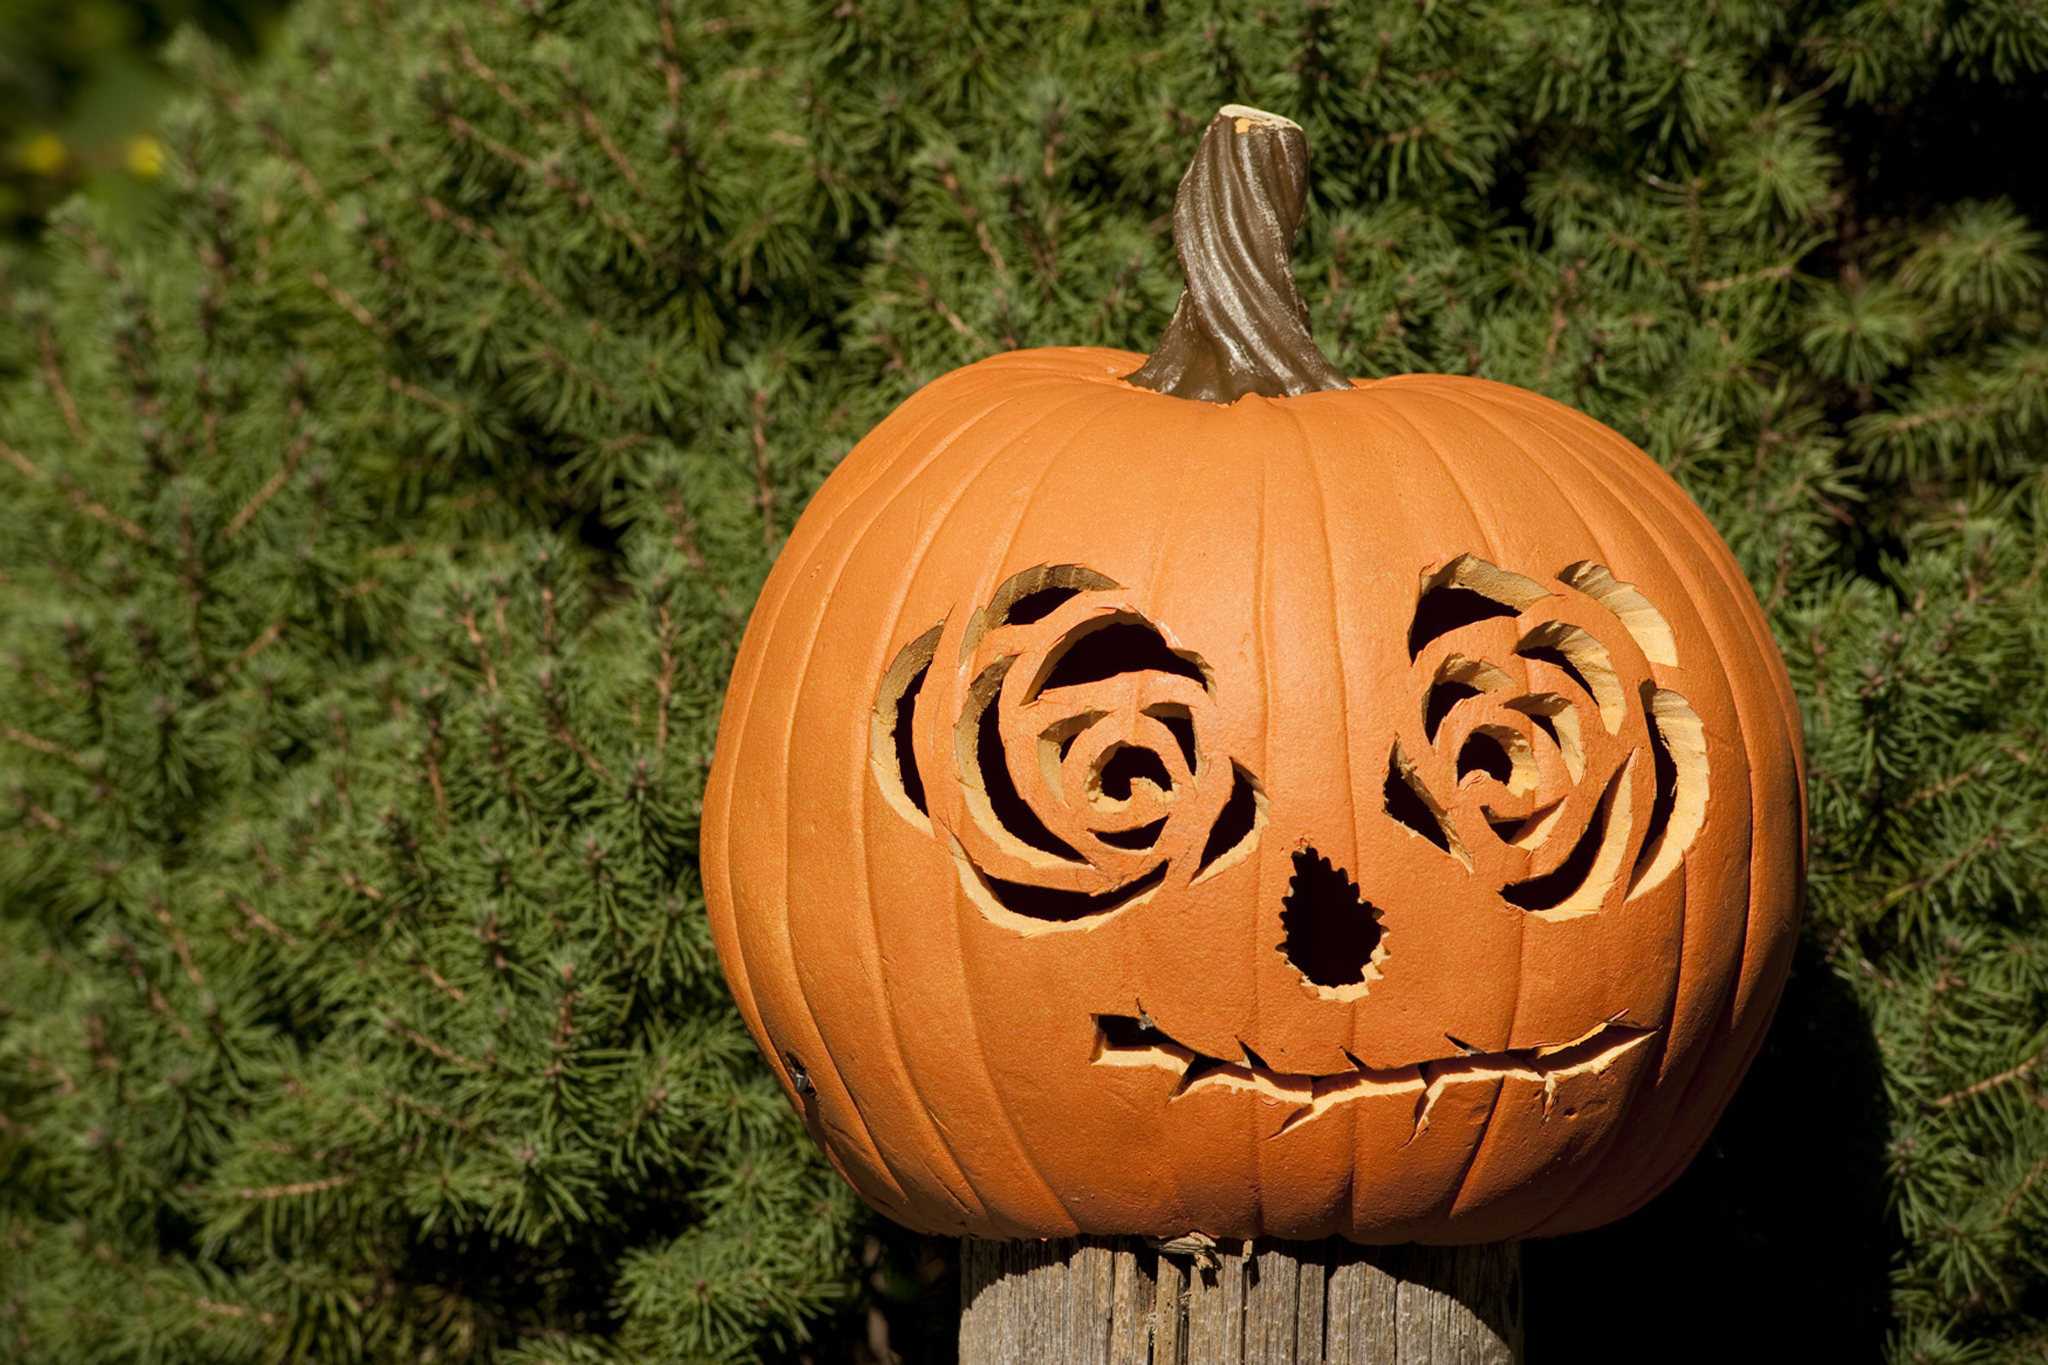 Giant pumpkin carving weekend things to do in new york kids